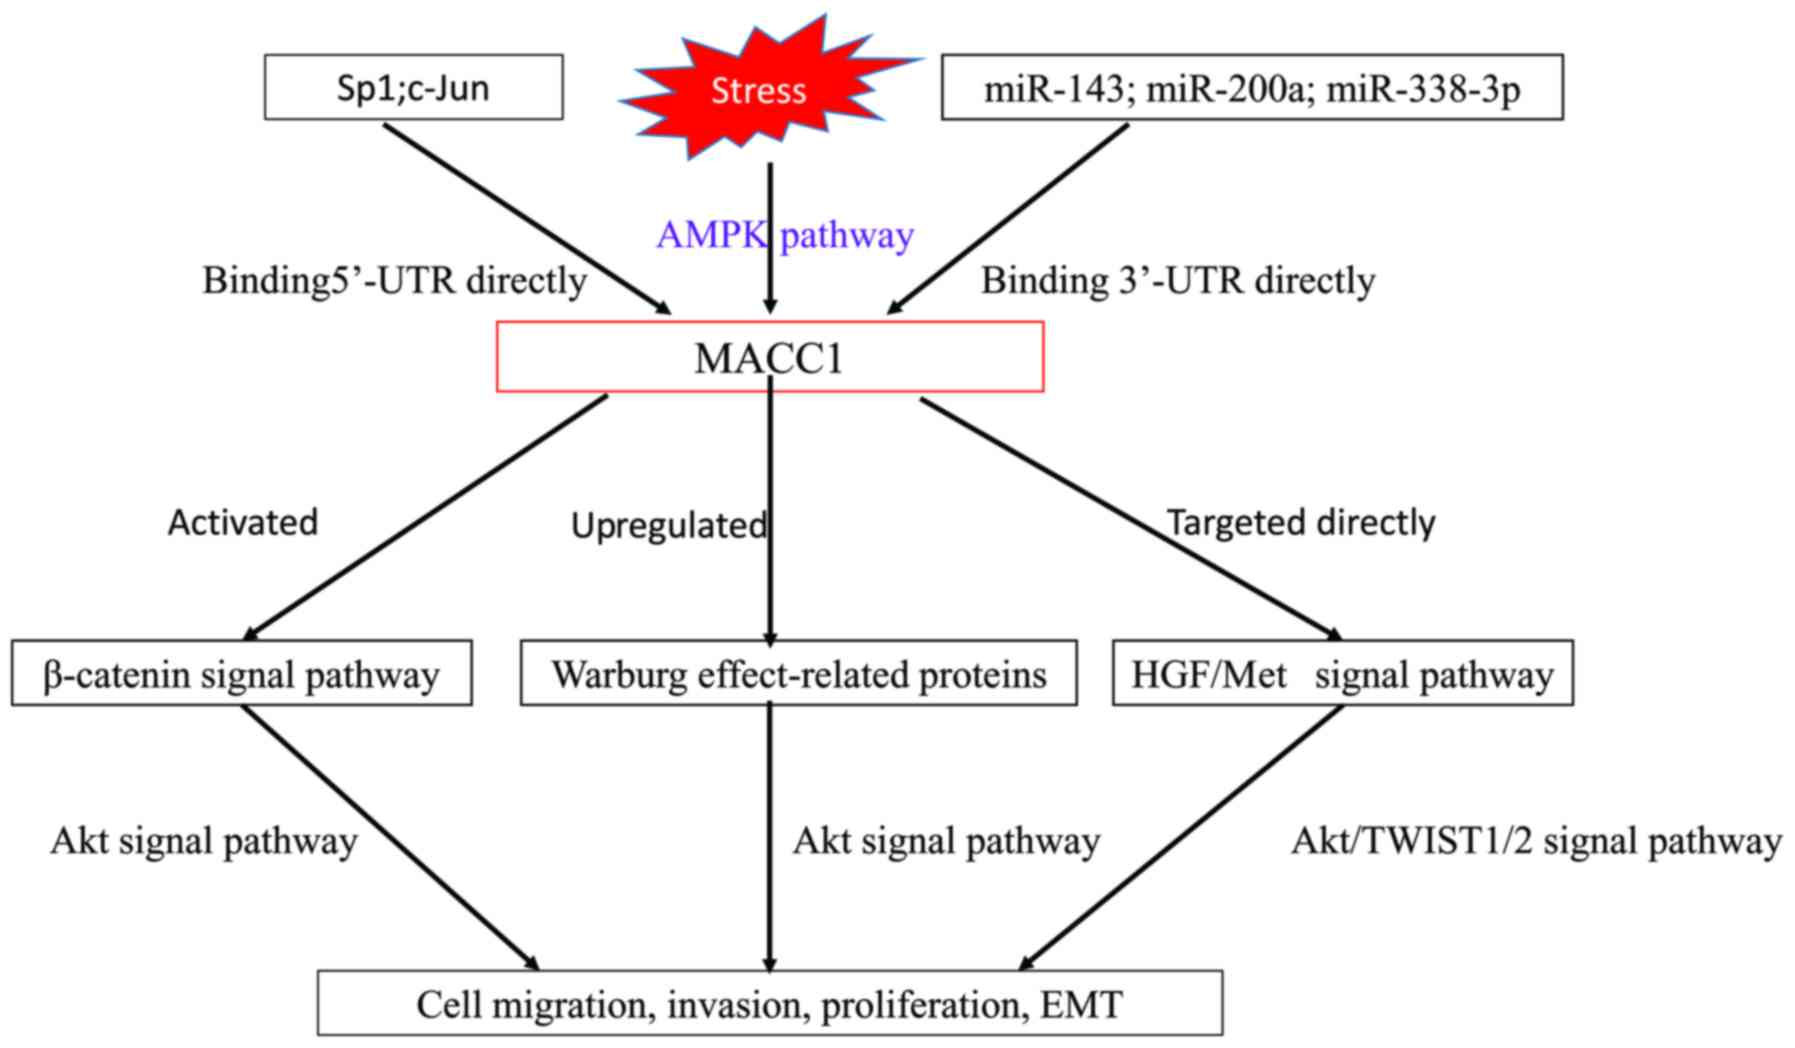 Metastasis Associated In Colon Cancer 1 A Promising Biomarker For The Metastasis And Prognosis Of Colorectal Cancer Review